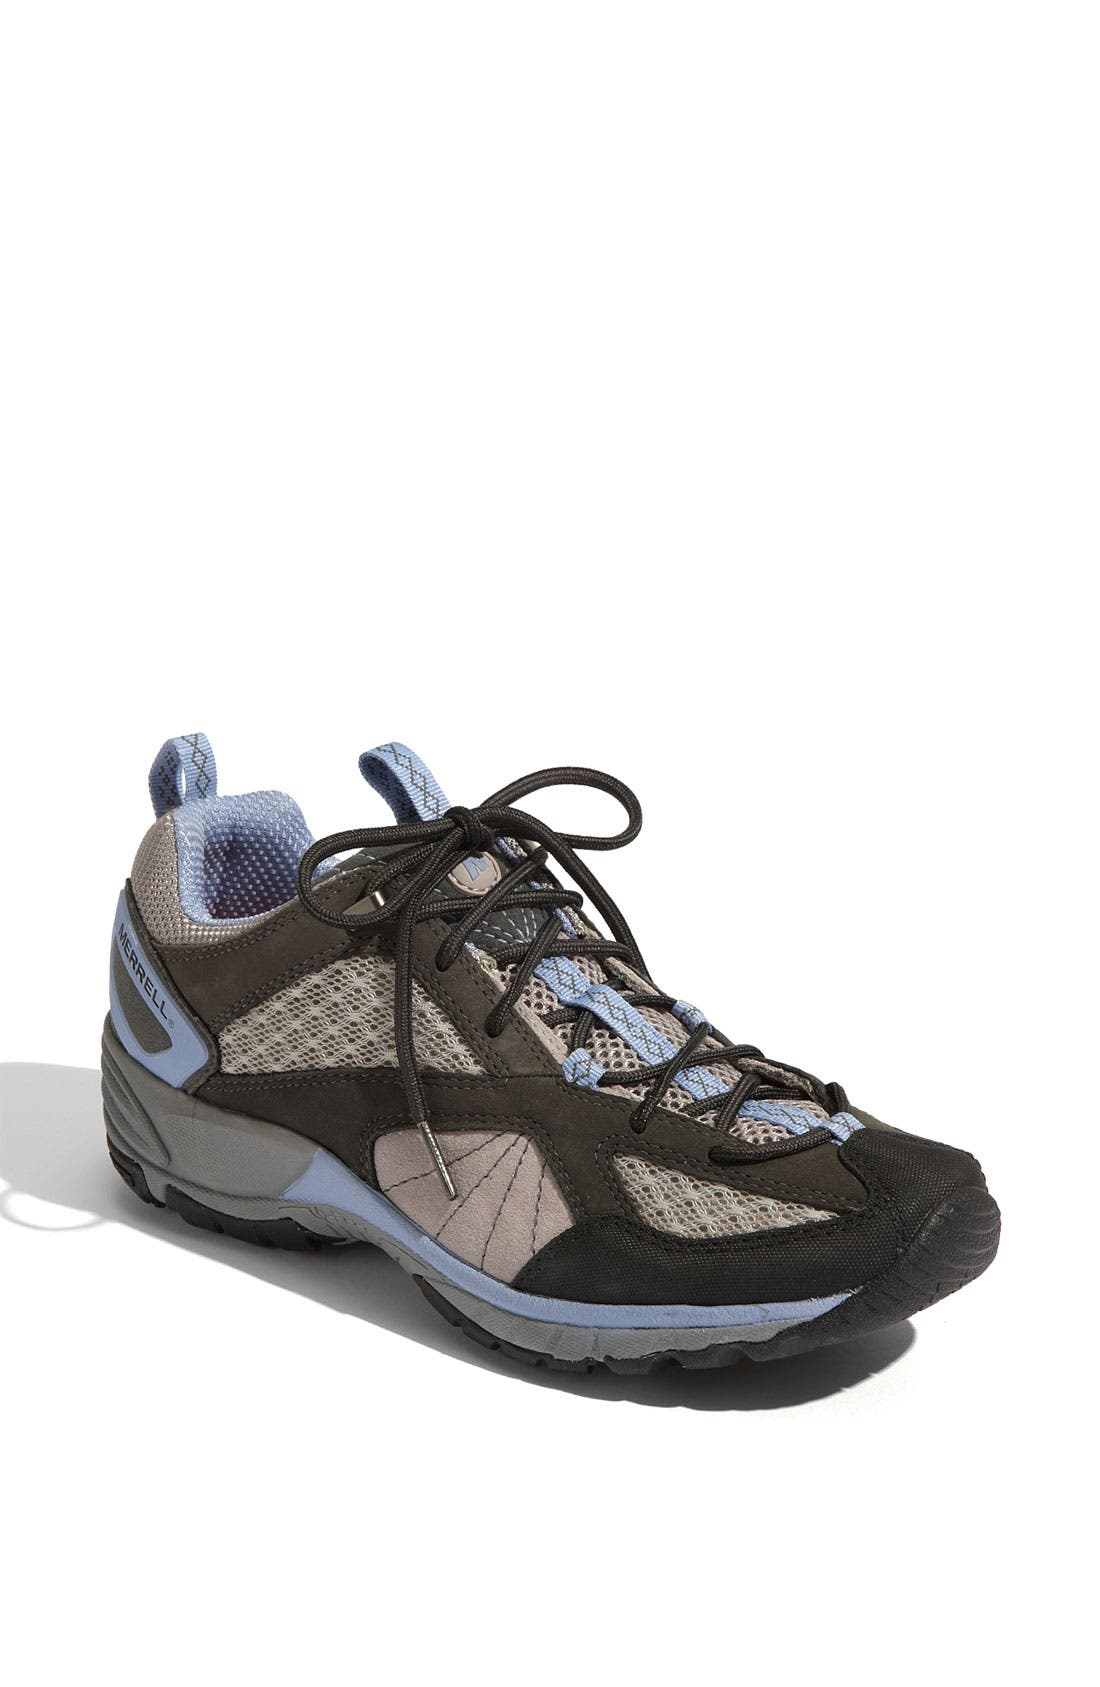 Alternate Image 1 Selected - Merrell 'Avian Light Ventilator' Hiking Shoe (Women)